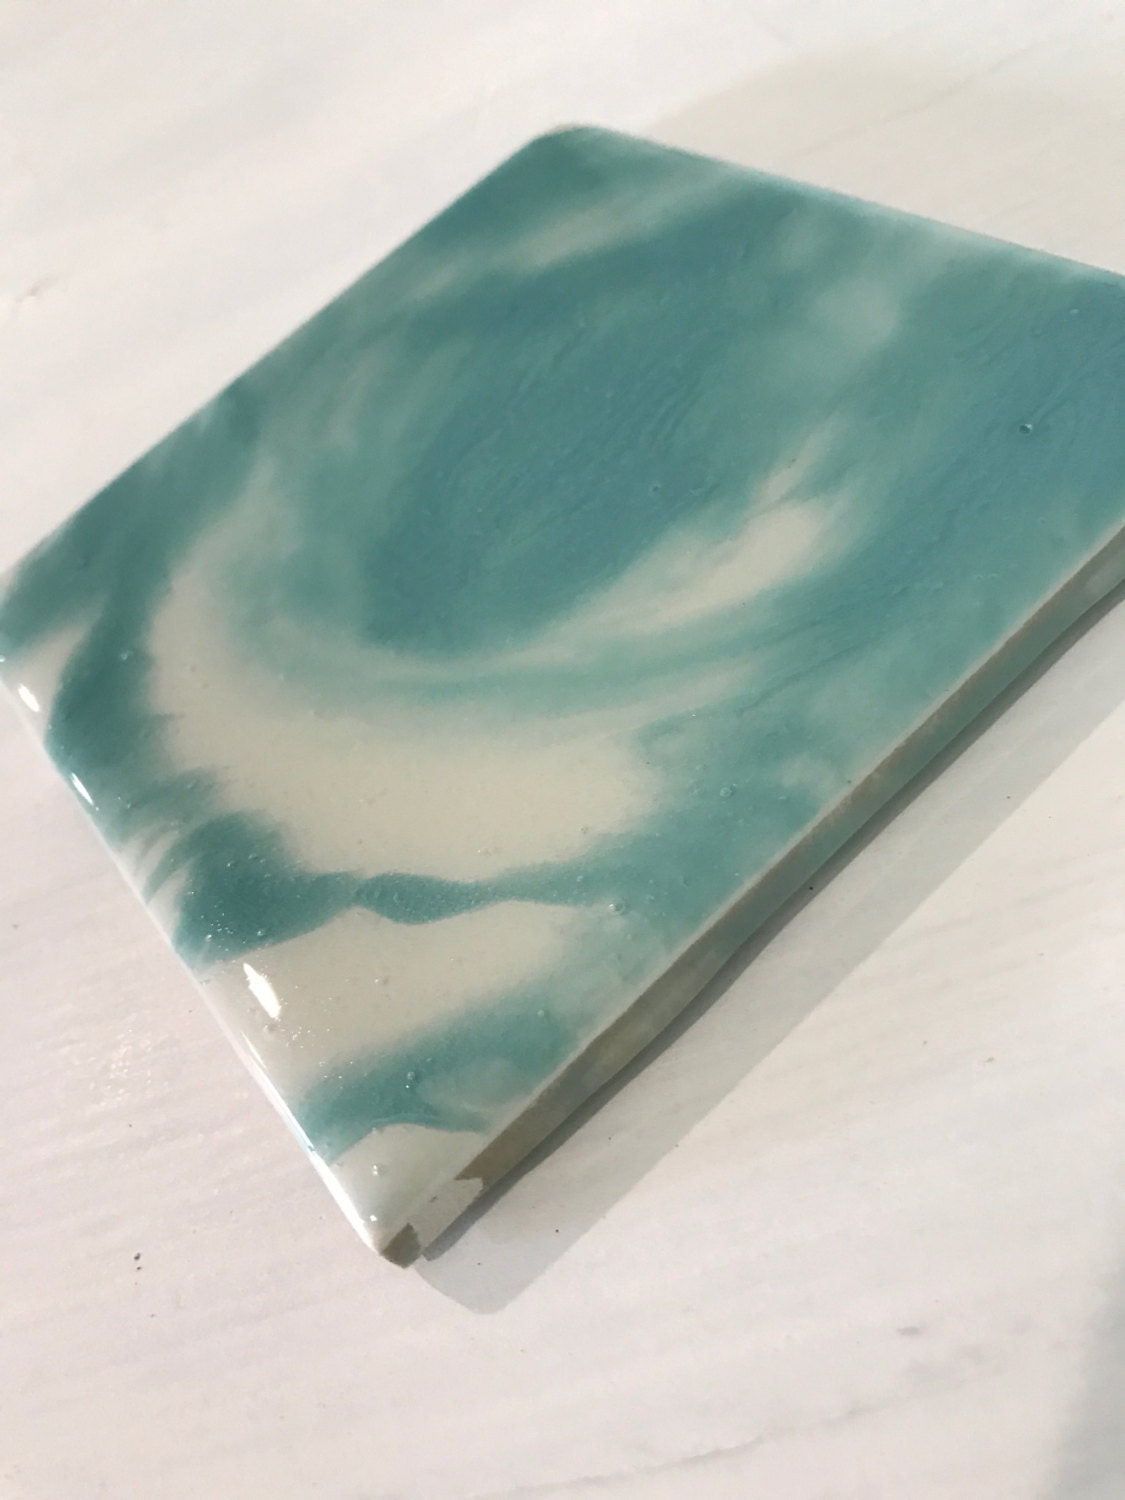 Coasters / Light Blue / Home Decor / Drink / Salvaged / Upcylced / Ceramic Tile / Eco-friendly / Charity / Set of 4